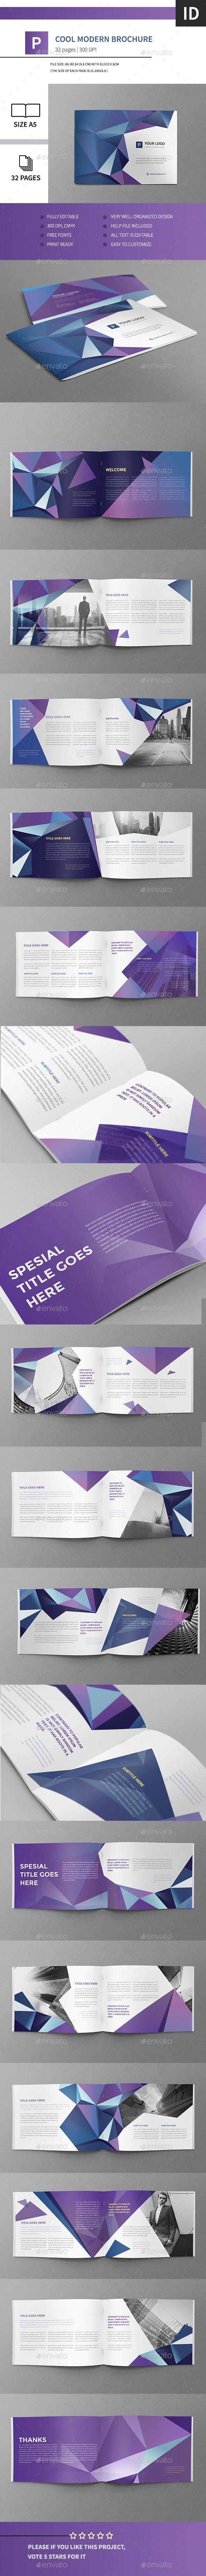 Cool Modern Brochure 32 Pages A5 Horizontal - Brochures Print Templates